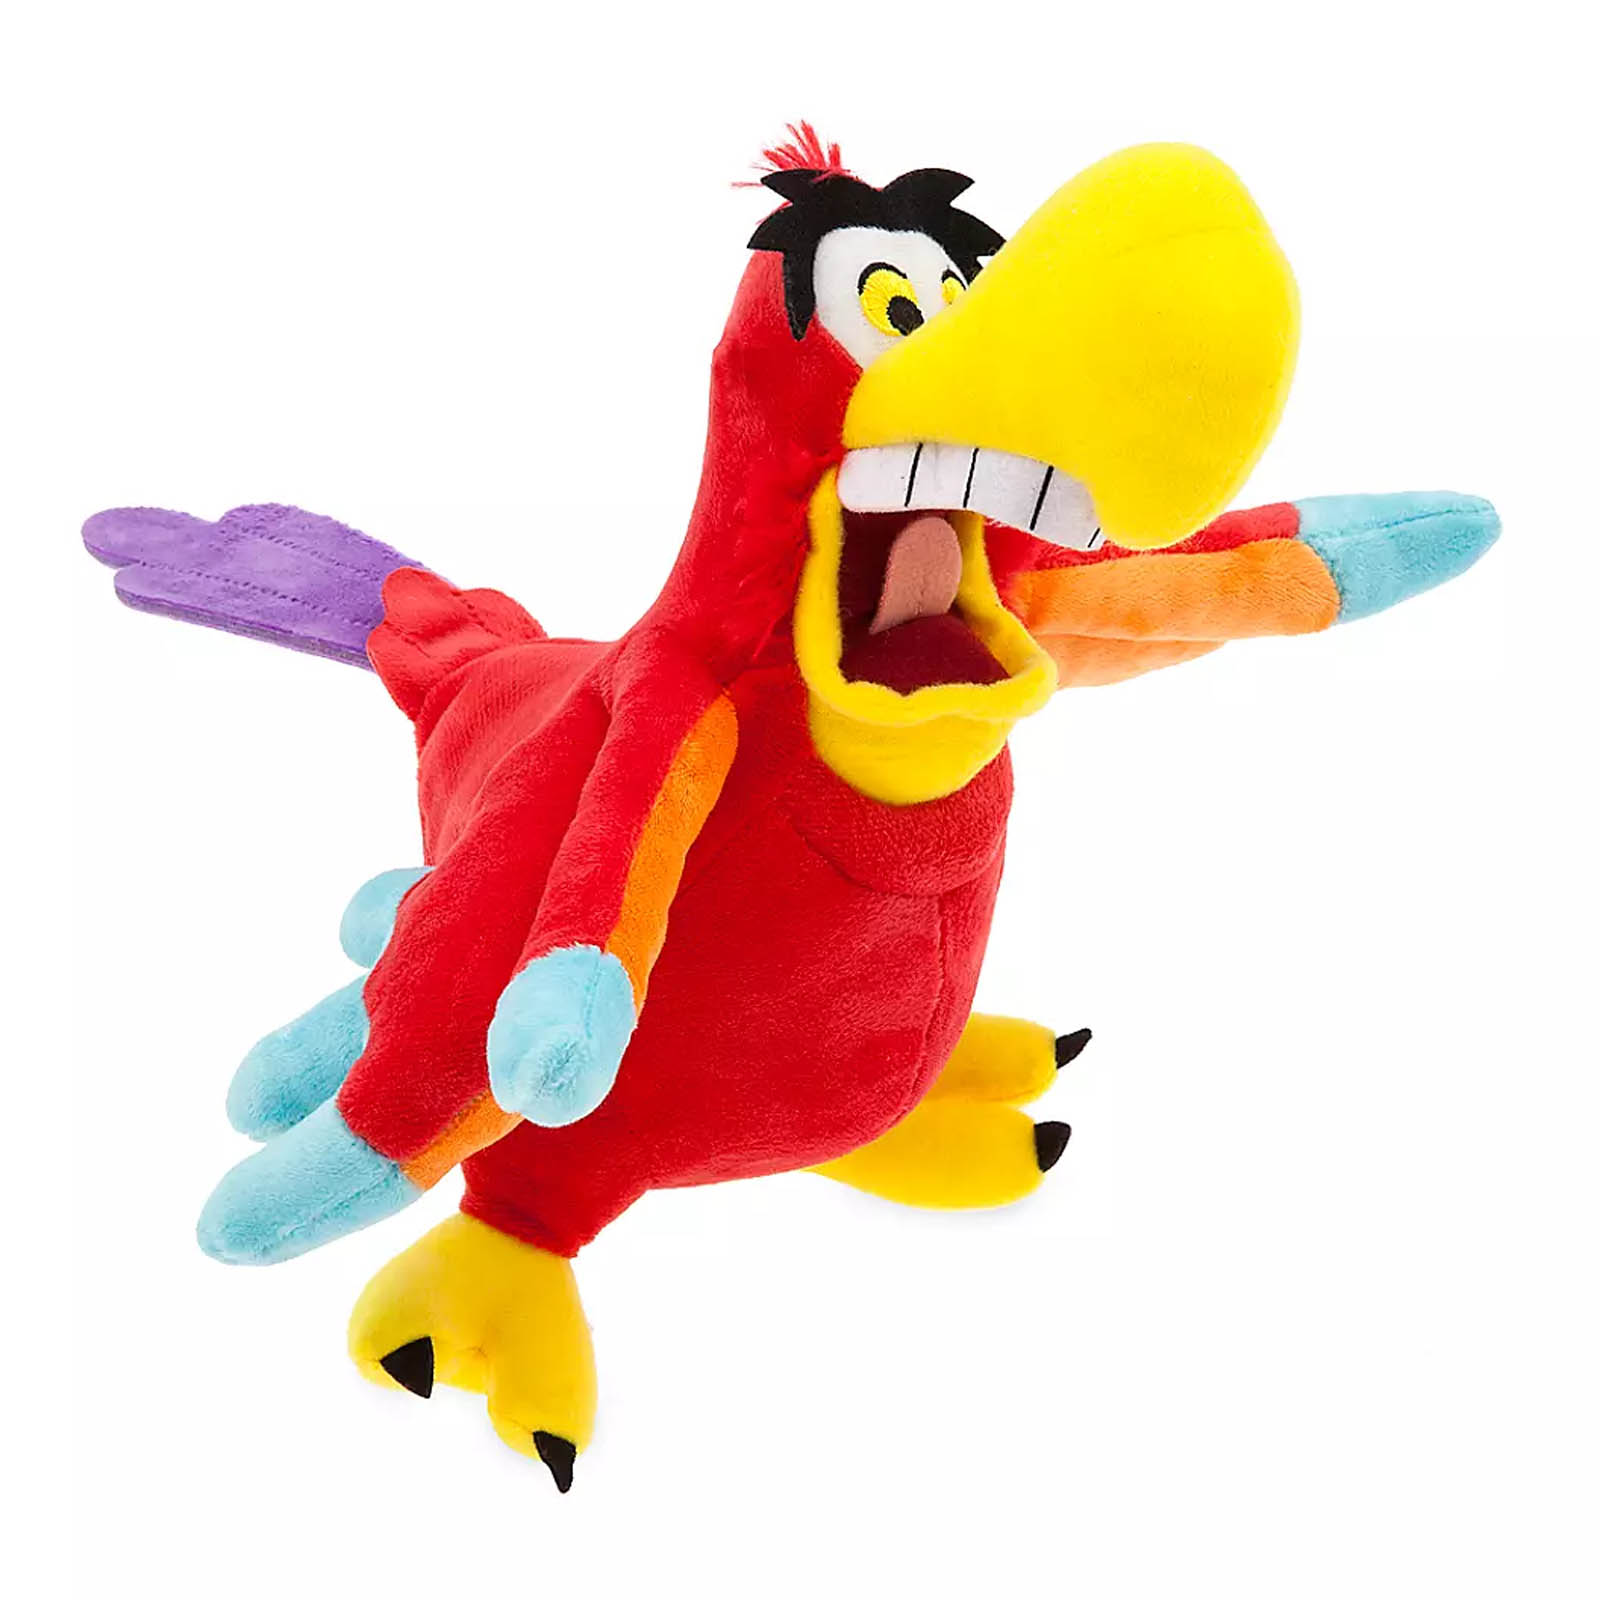 Disney Aladdin Iago Plush Toy - Disney Store Exclusive